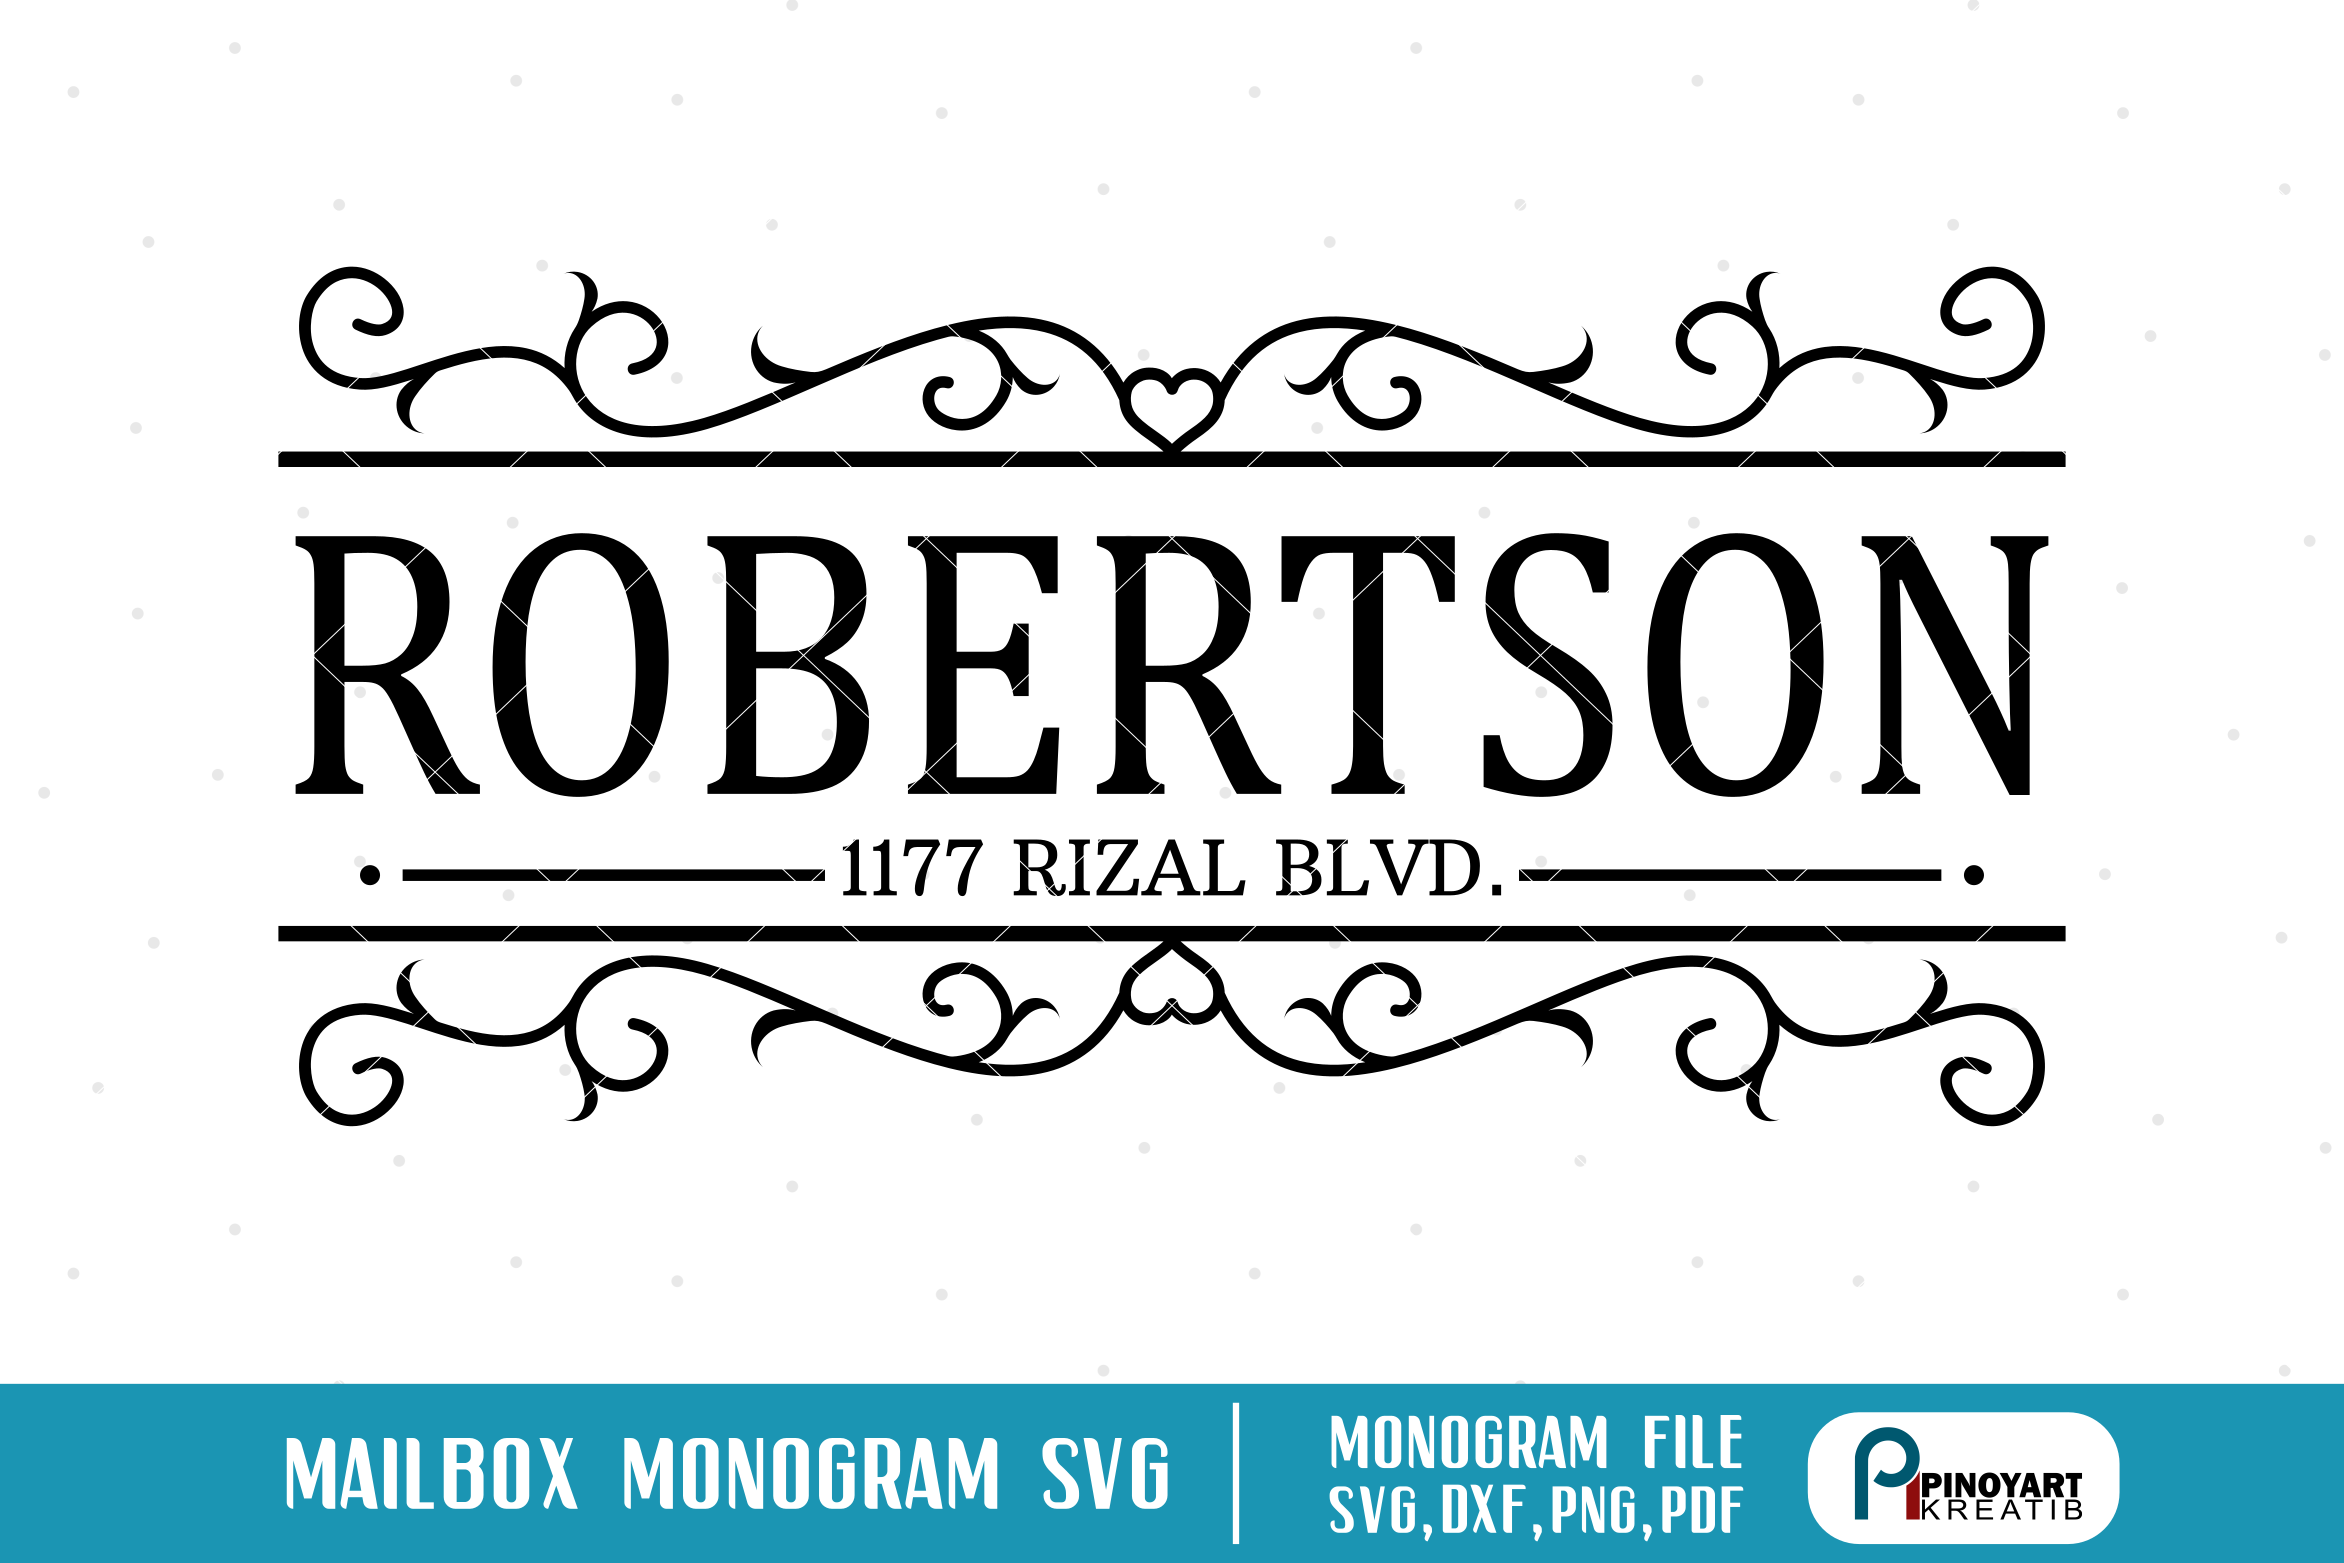 mailbox decal svg #994, Download drawings